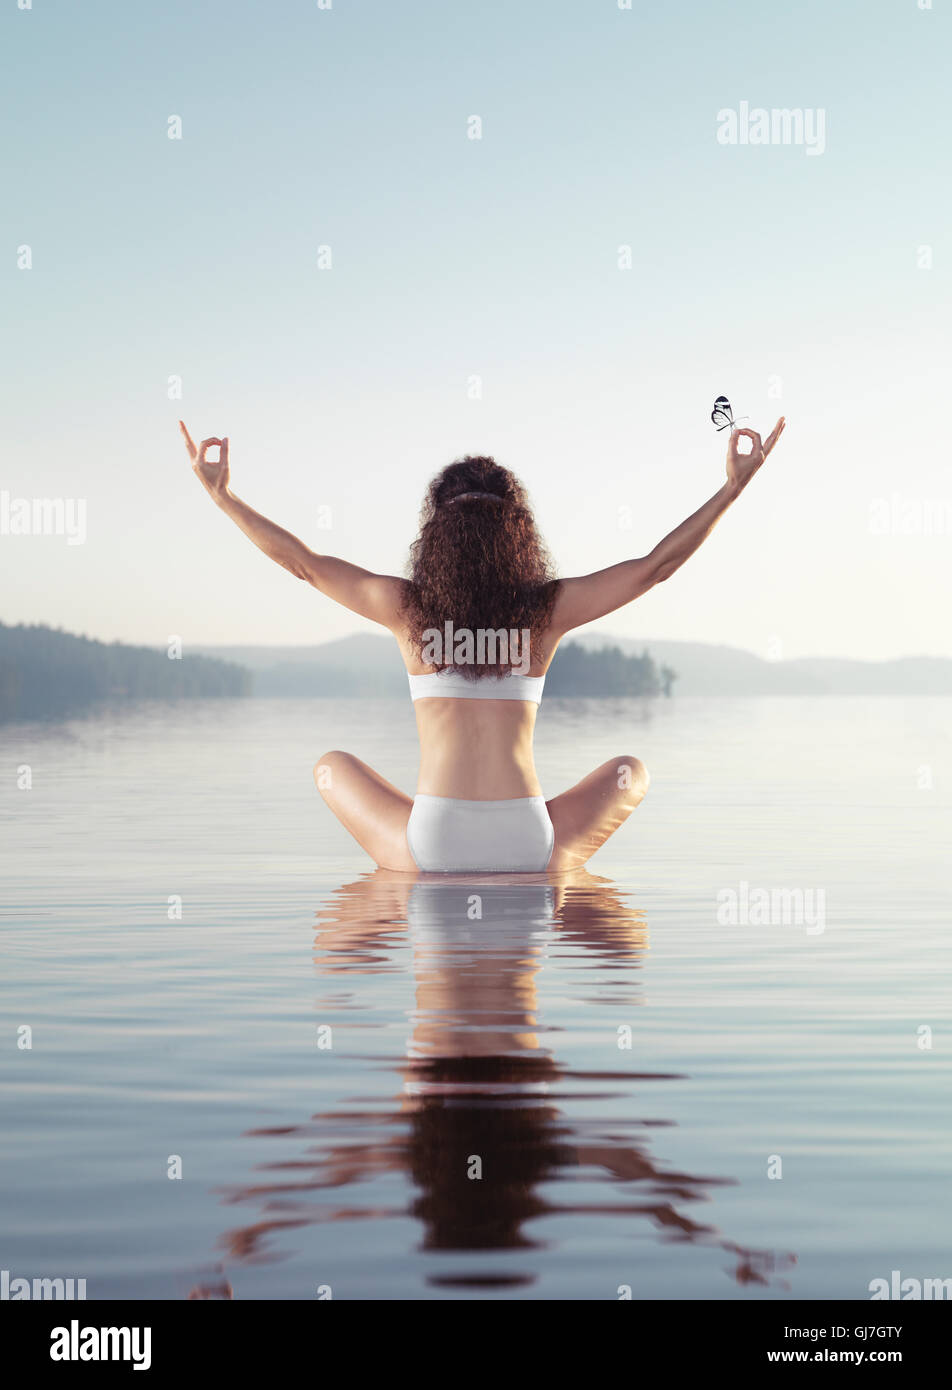 Artistic concept of a woman meditating with a butterfly on her hand. Practicing meditation on a floating platform - Stock Image